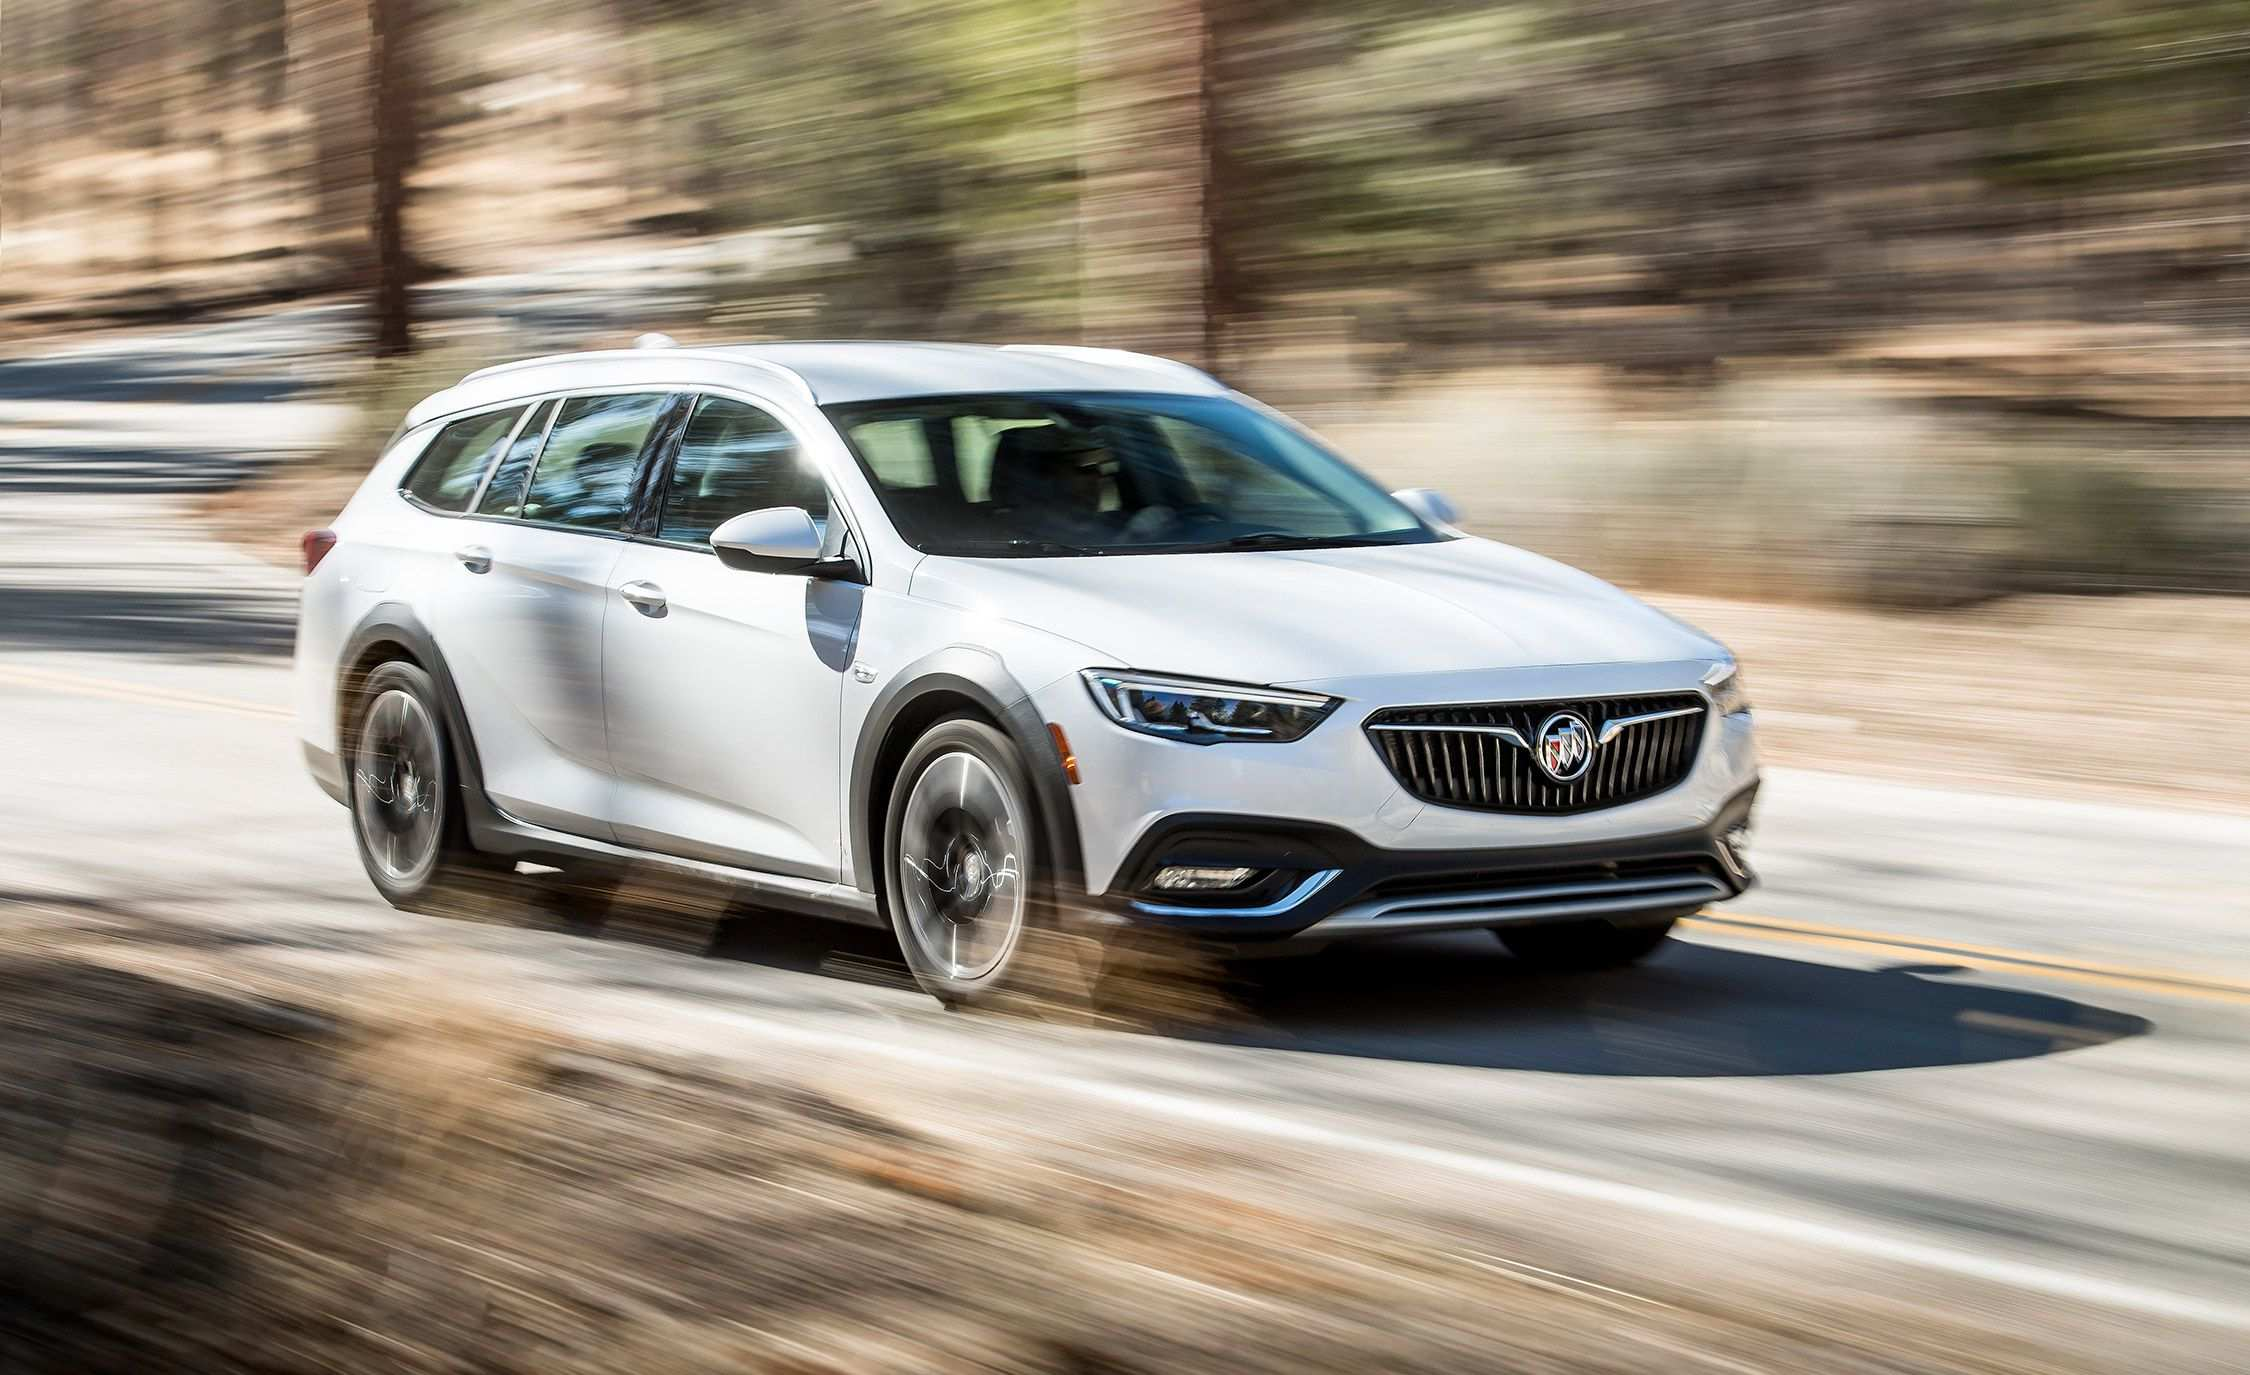 45 A 2020 Buick Regal Wagon Release Date And Concept